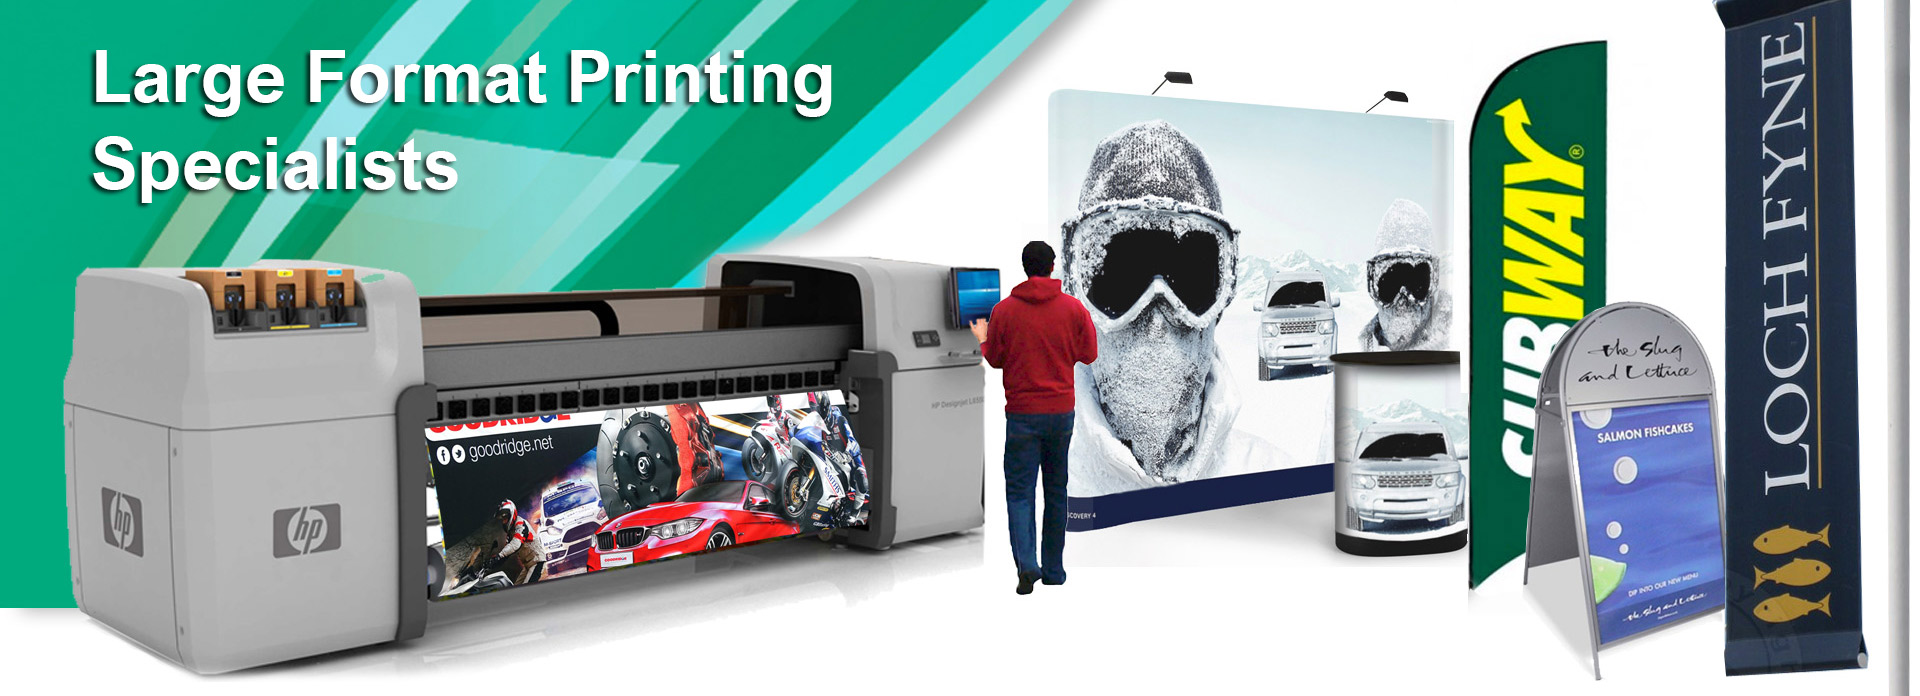 Large Format Printing, banners, posters, wallpaper